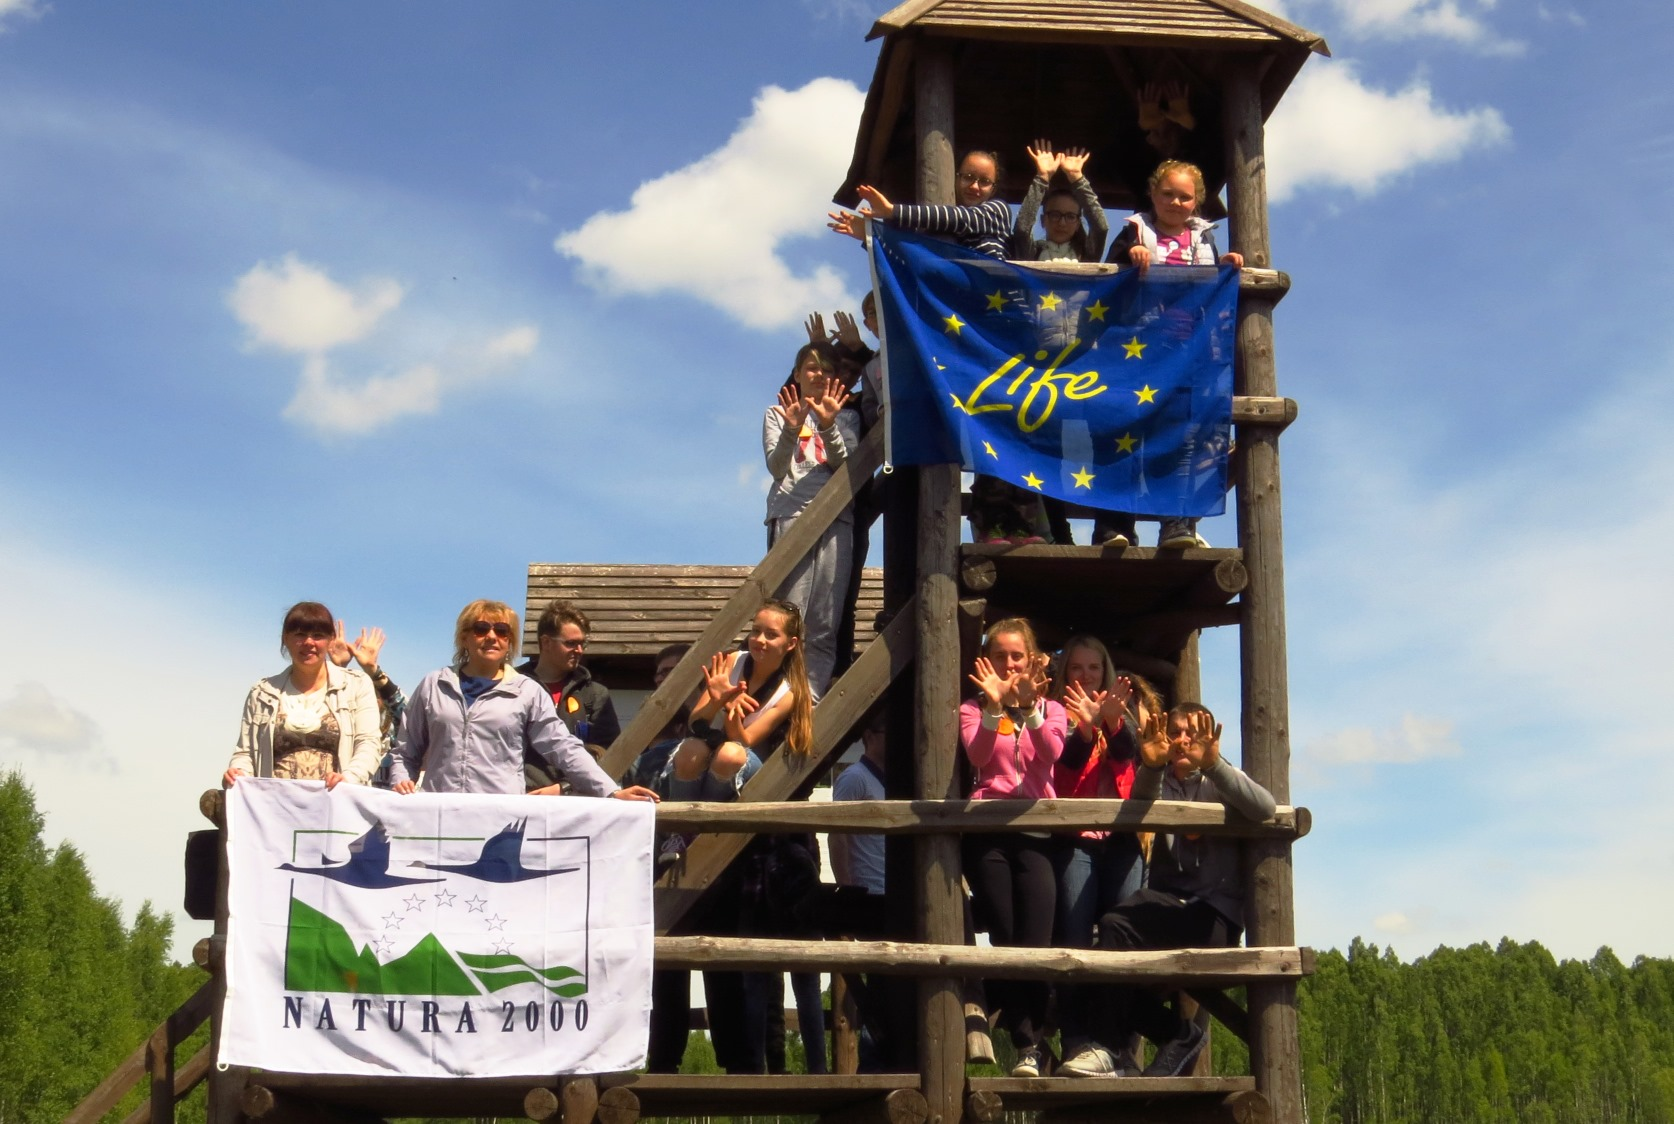 Lithuanian Ornithological Society. N2000 Day at Tyruliai bog.